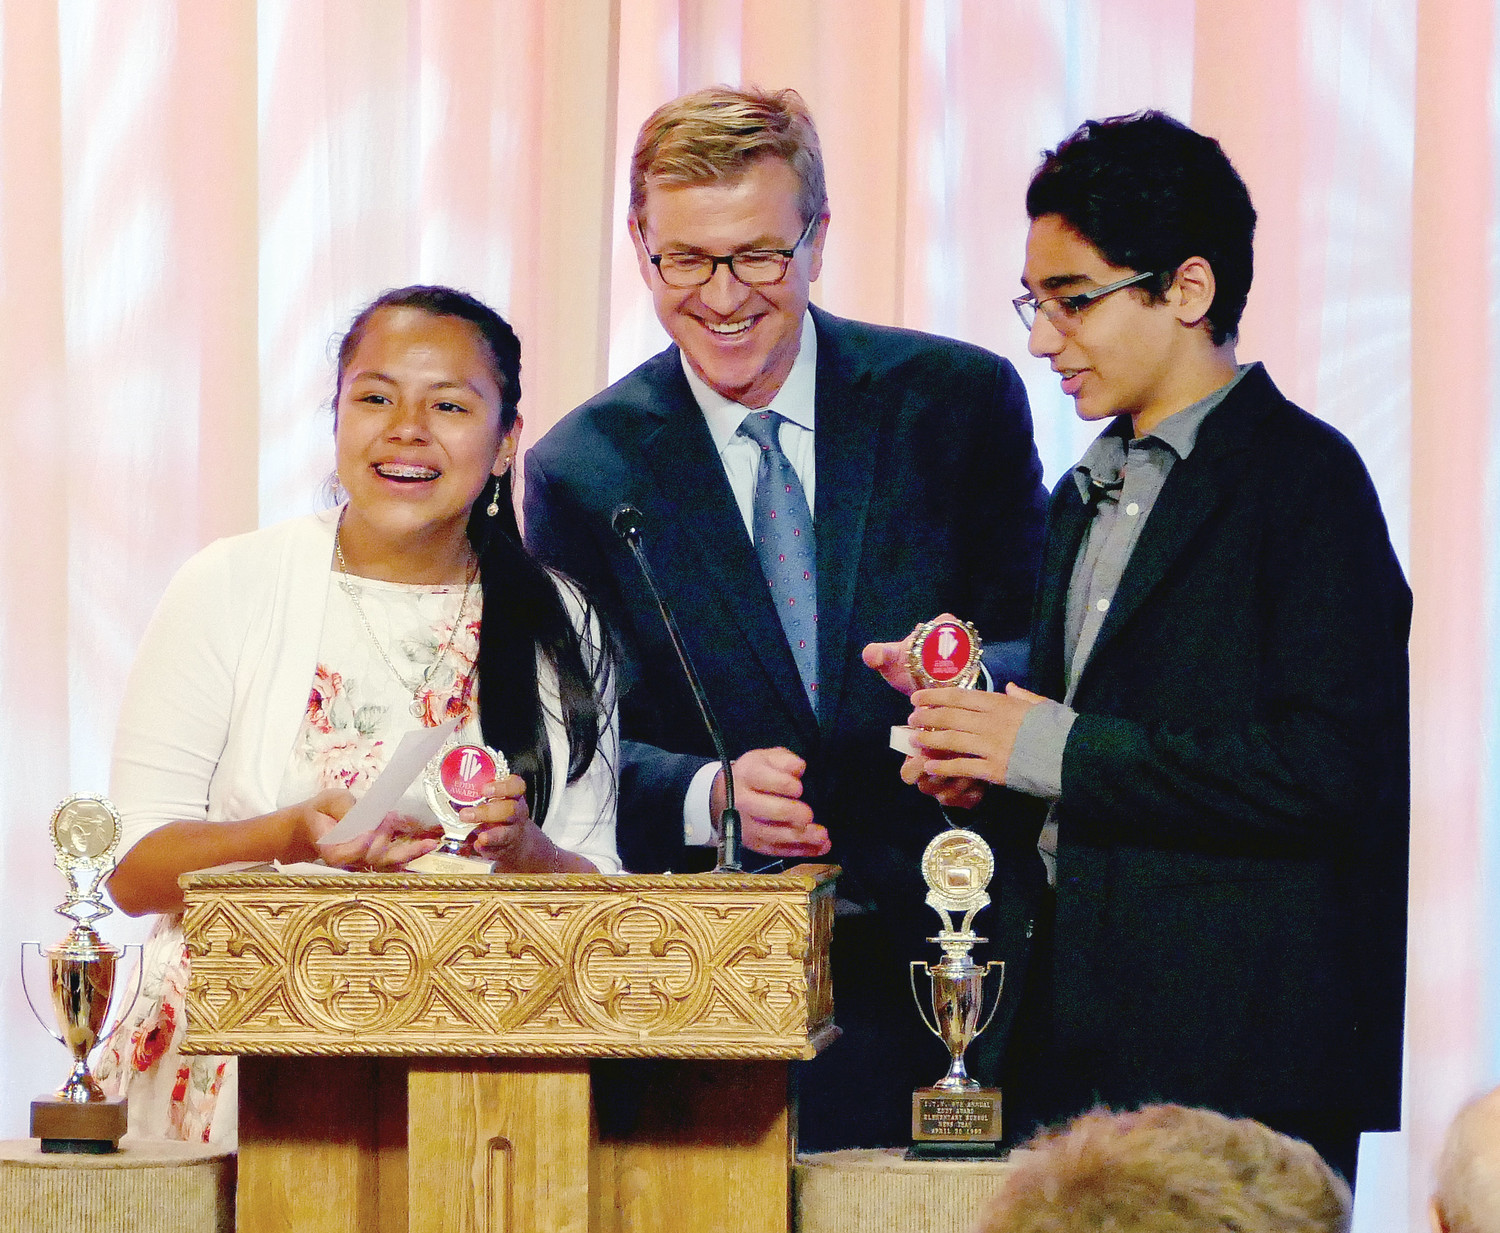 Dick Brennan of WCBS-TV presents the awards to the Best Elementary School Anchors Brittany Reyes and Tristan Murray of St. Peter School, Poughkeepsie.